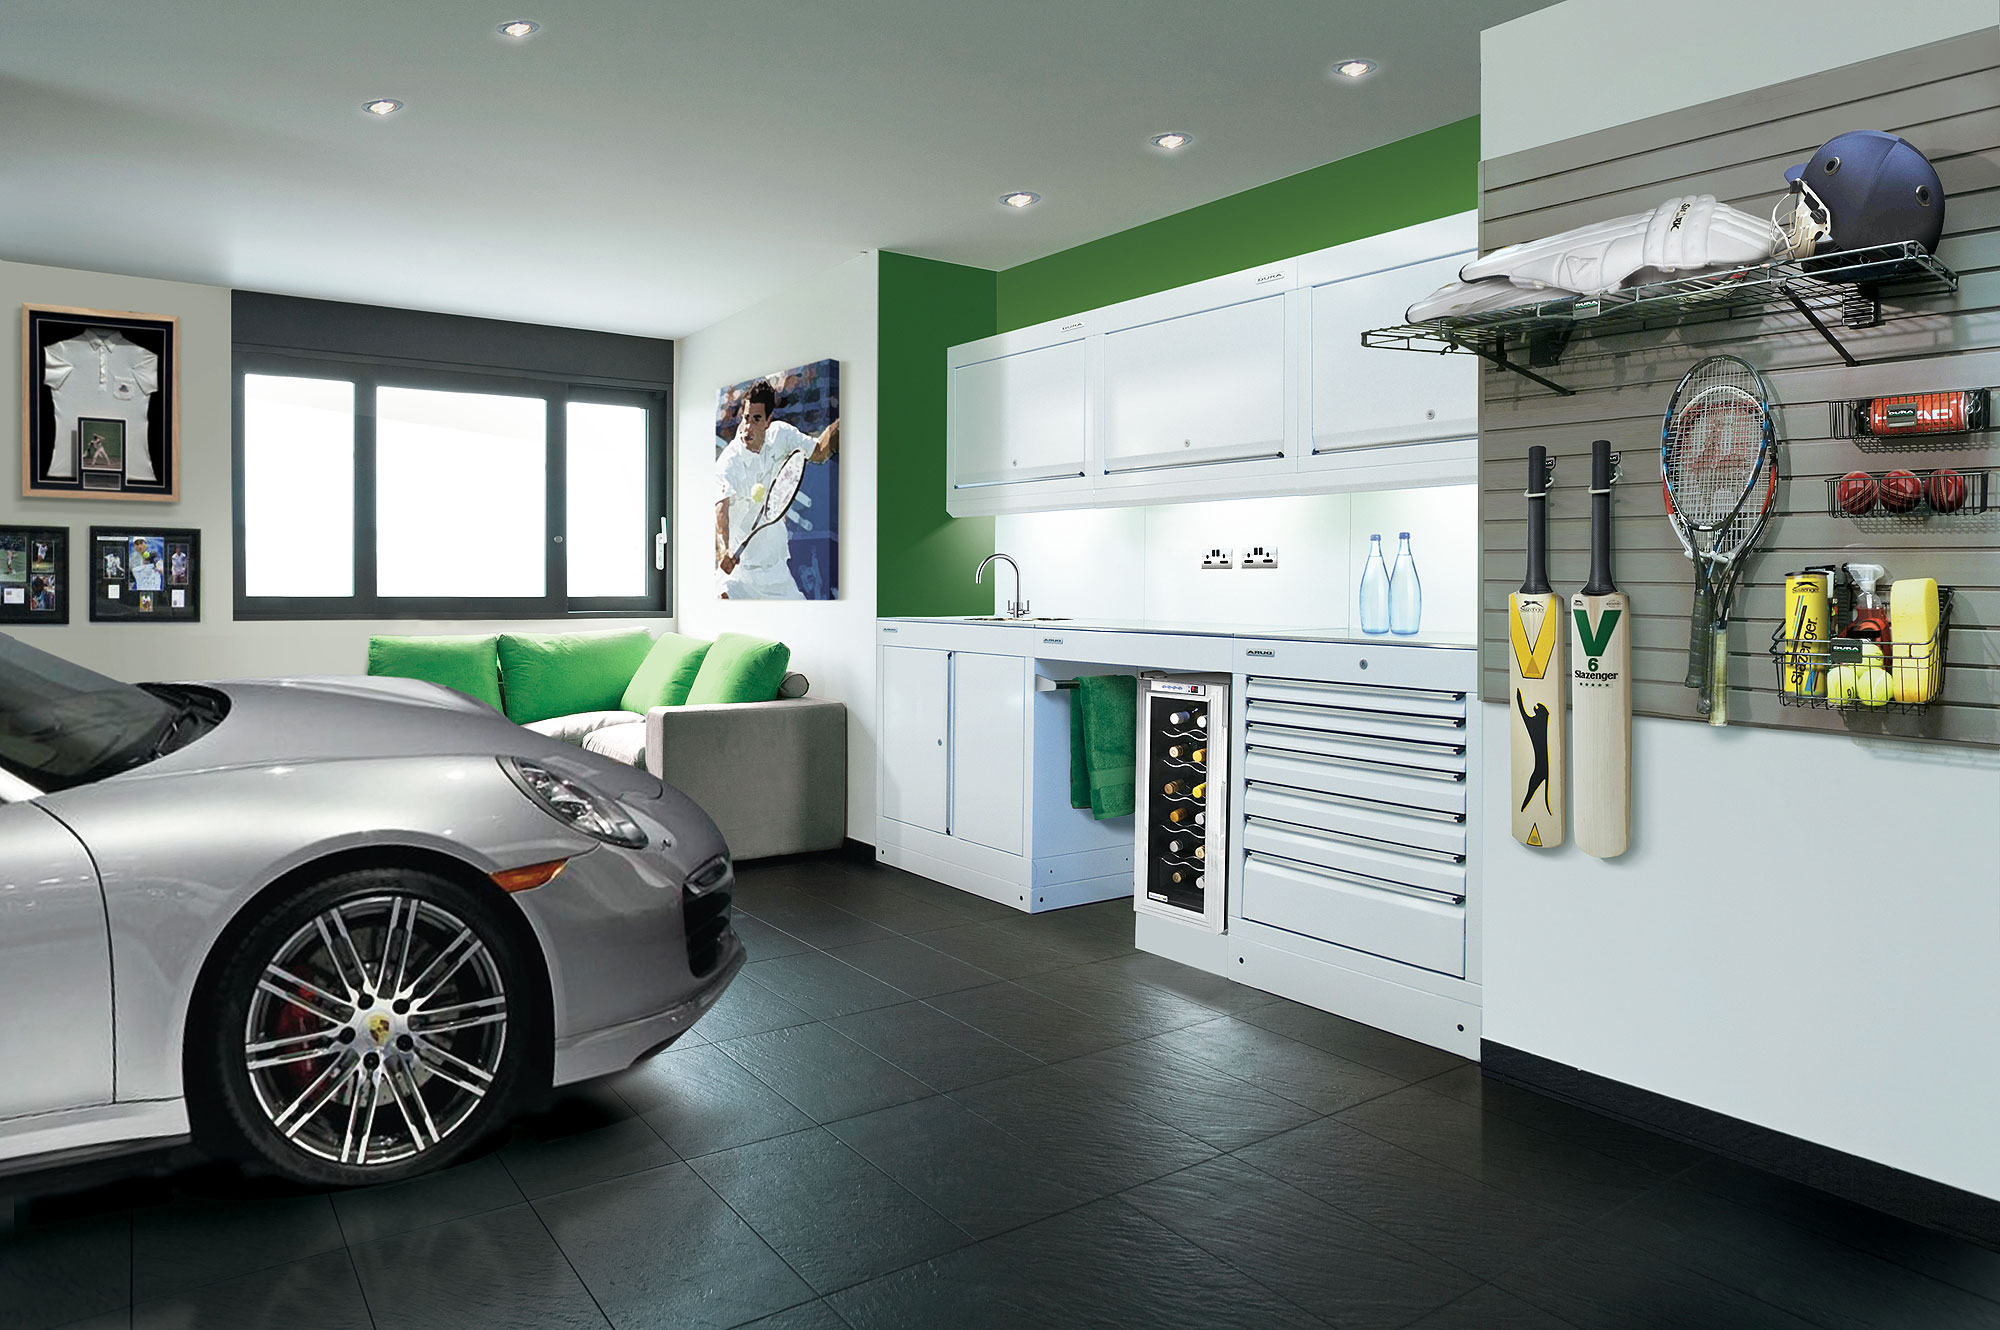 garage themed room ideas - 3 car garage interior design ideas – Interior Design